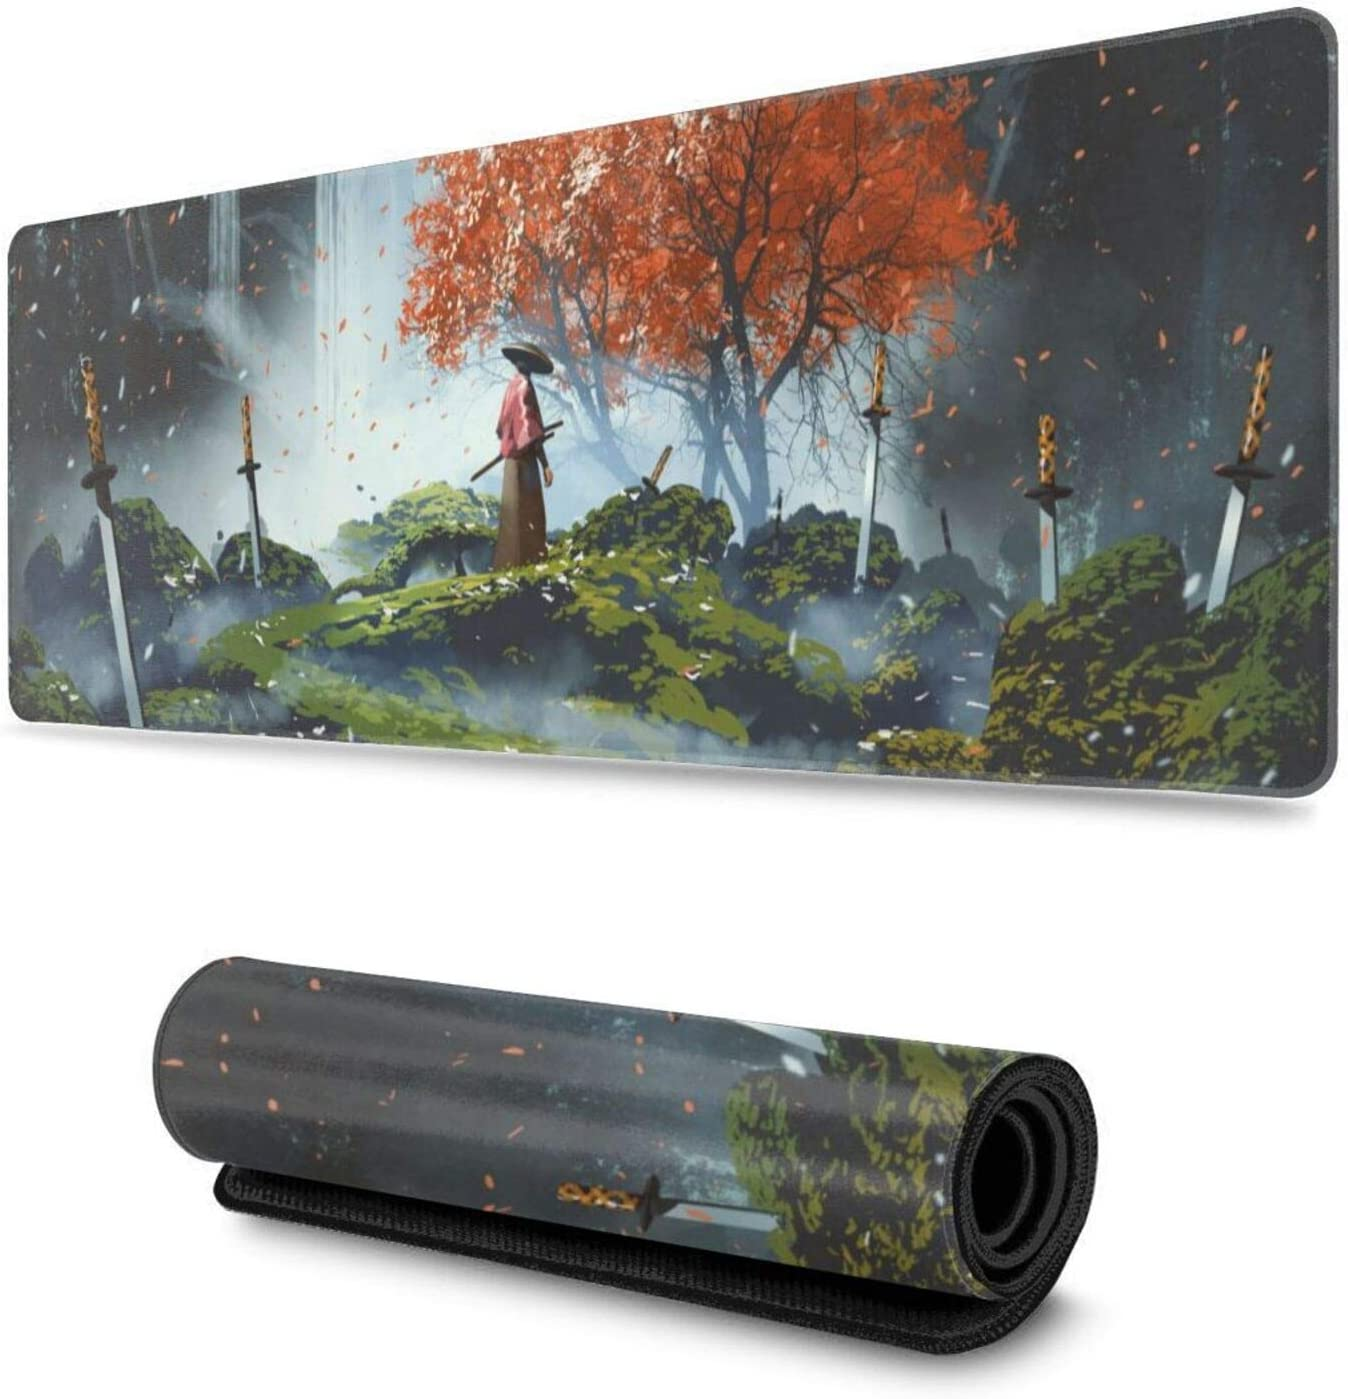 Japanese Samurai in Waterfall Garden Gaming Mouse Pad XL, Extended Large Mouse Mat Desk Pad, Stitched Edges Mousepad, Long Non-Slip Rubber Base Mice Pad, 31.5 X 11.8 Inch